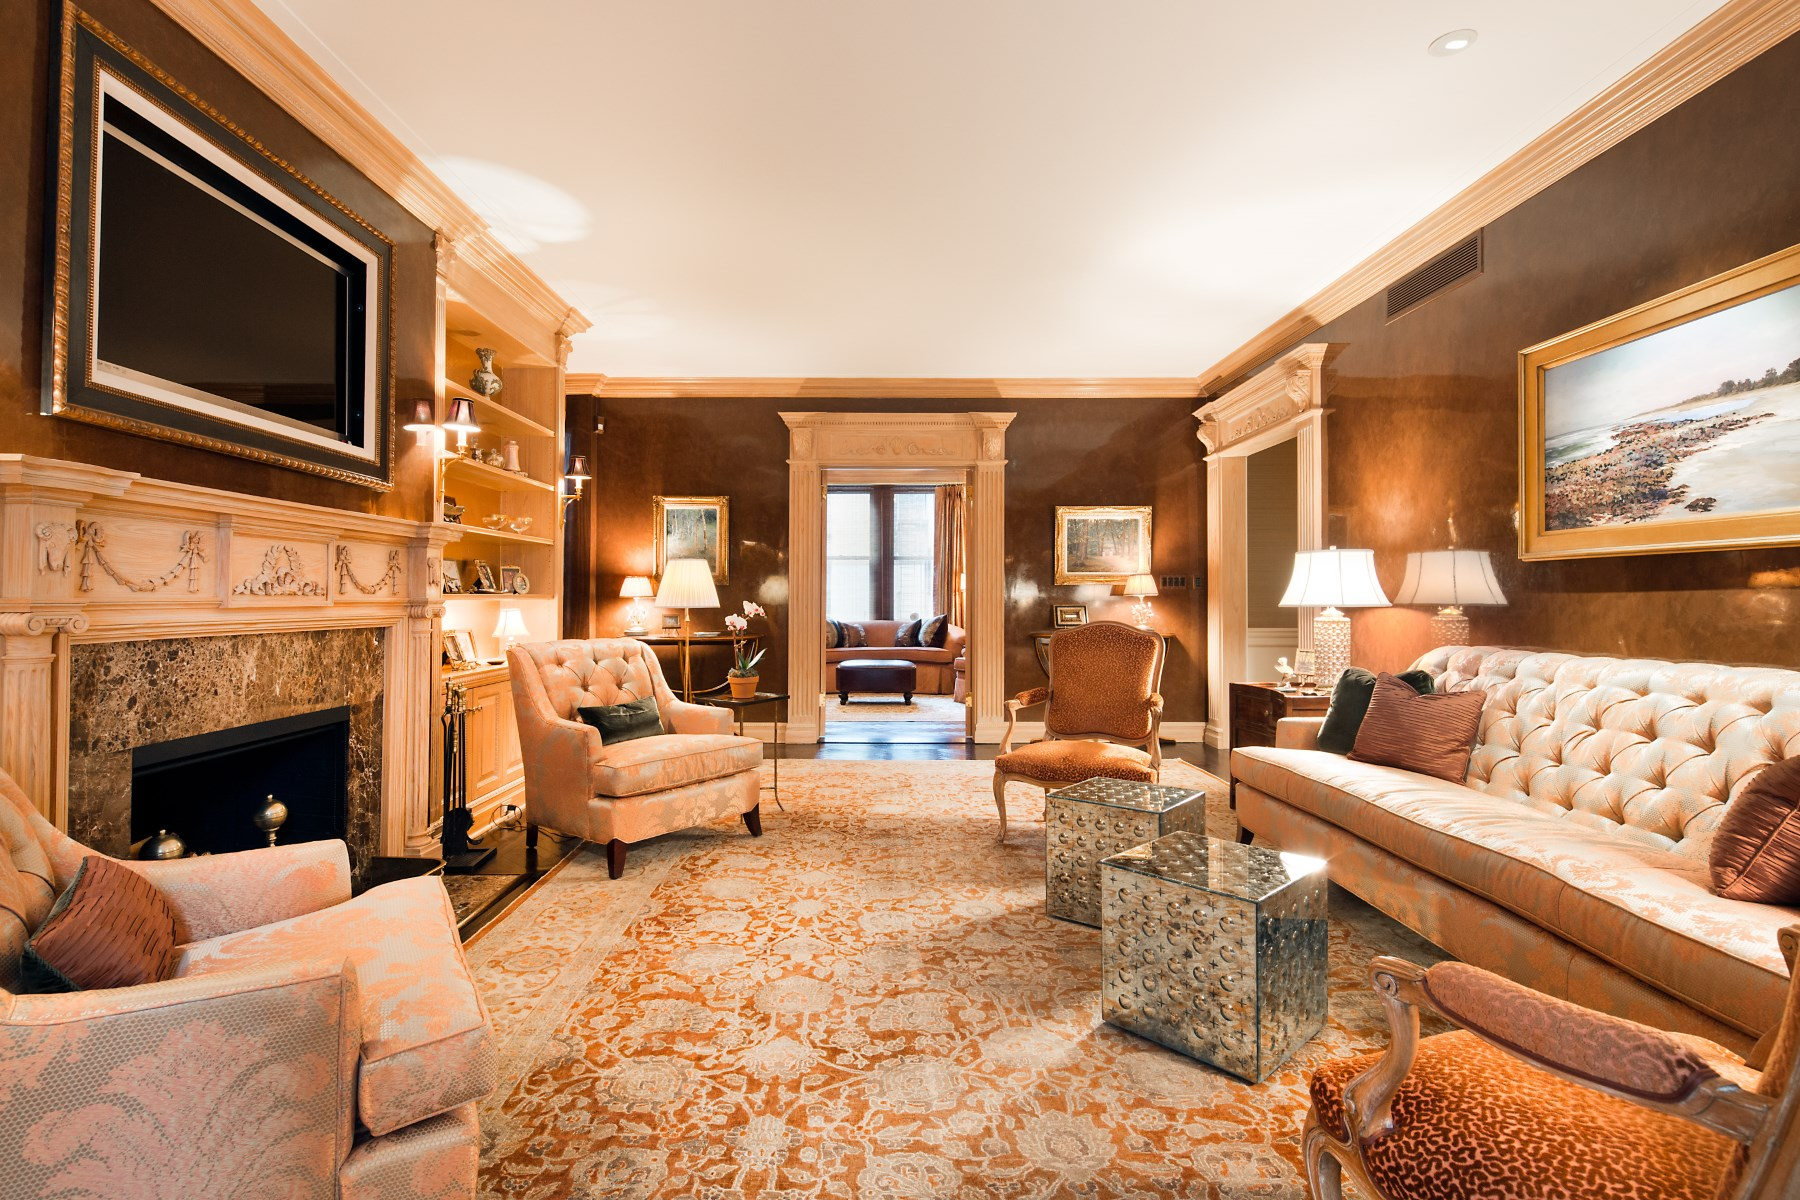 Co-op for Sale at 784 Park Avenue 784 Park Avenue Apt 2a Upper East Side, New York, New York, 10028 United States